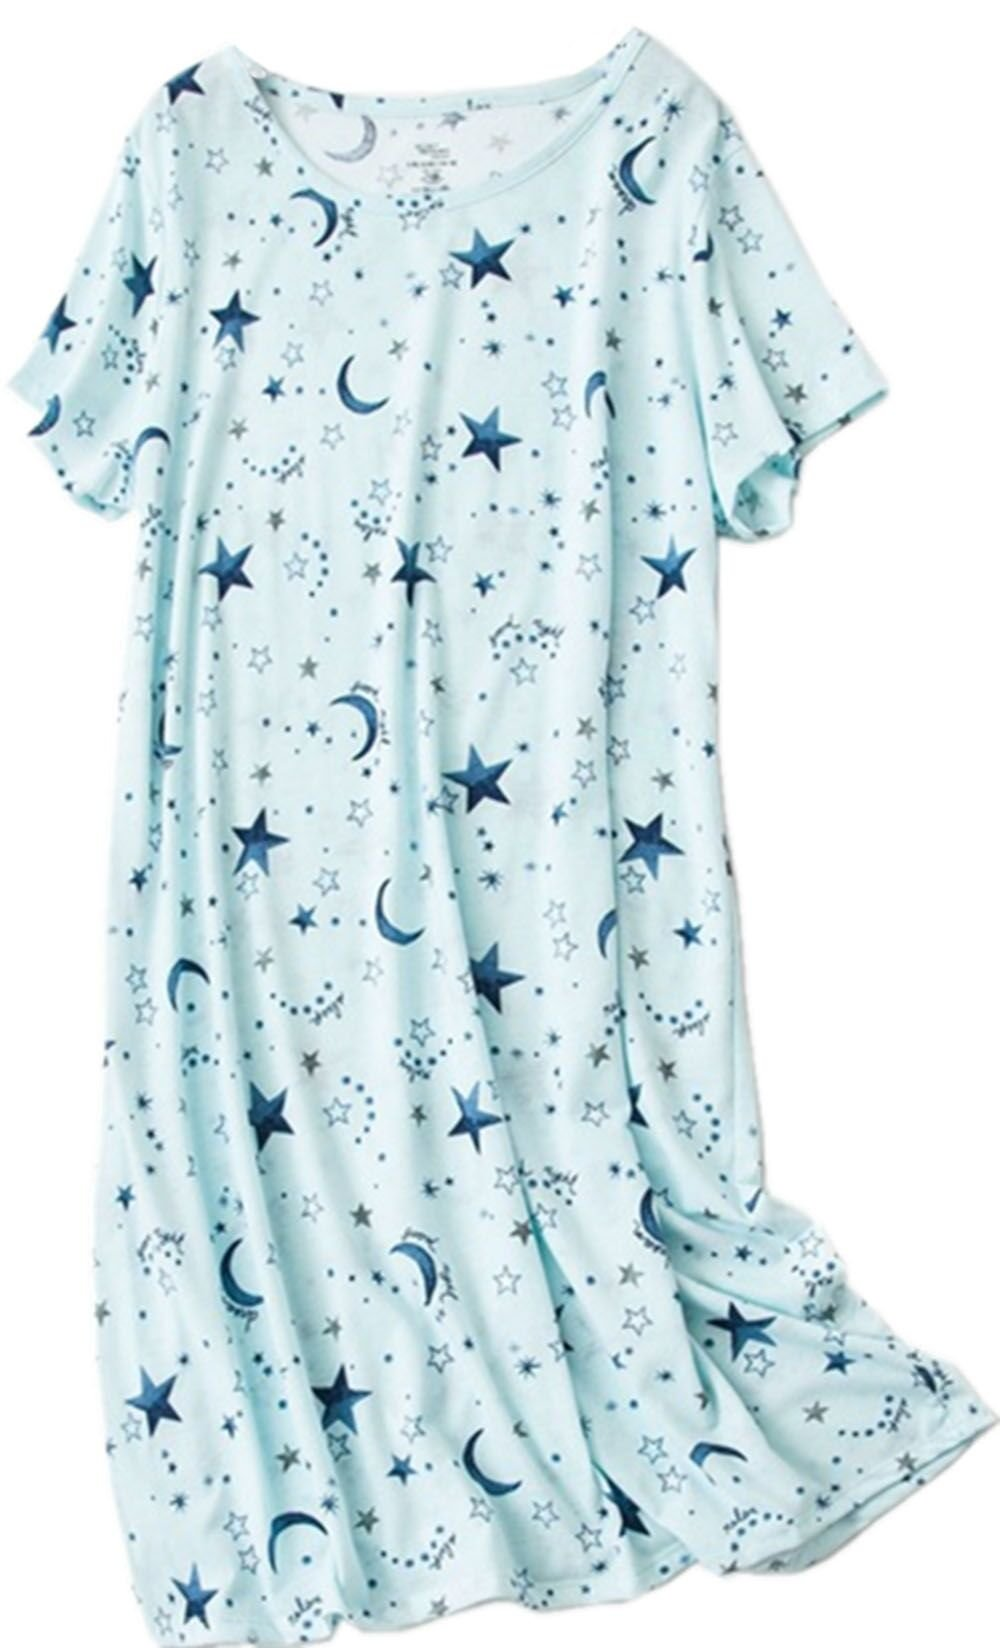 Amoy-Baby Women's Cotton Blend Green Floral Nightgown Casual Nights XTSY001-Blue Star-L by Amoy-Baby (Image #1)